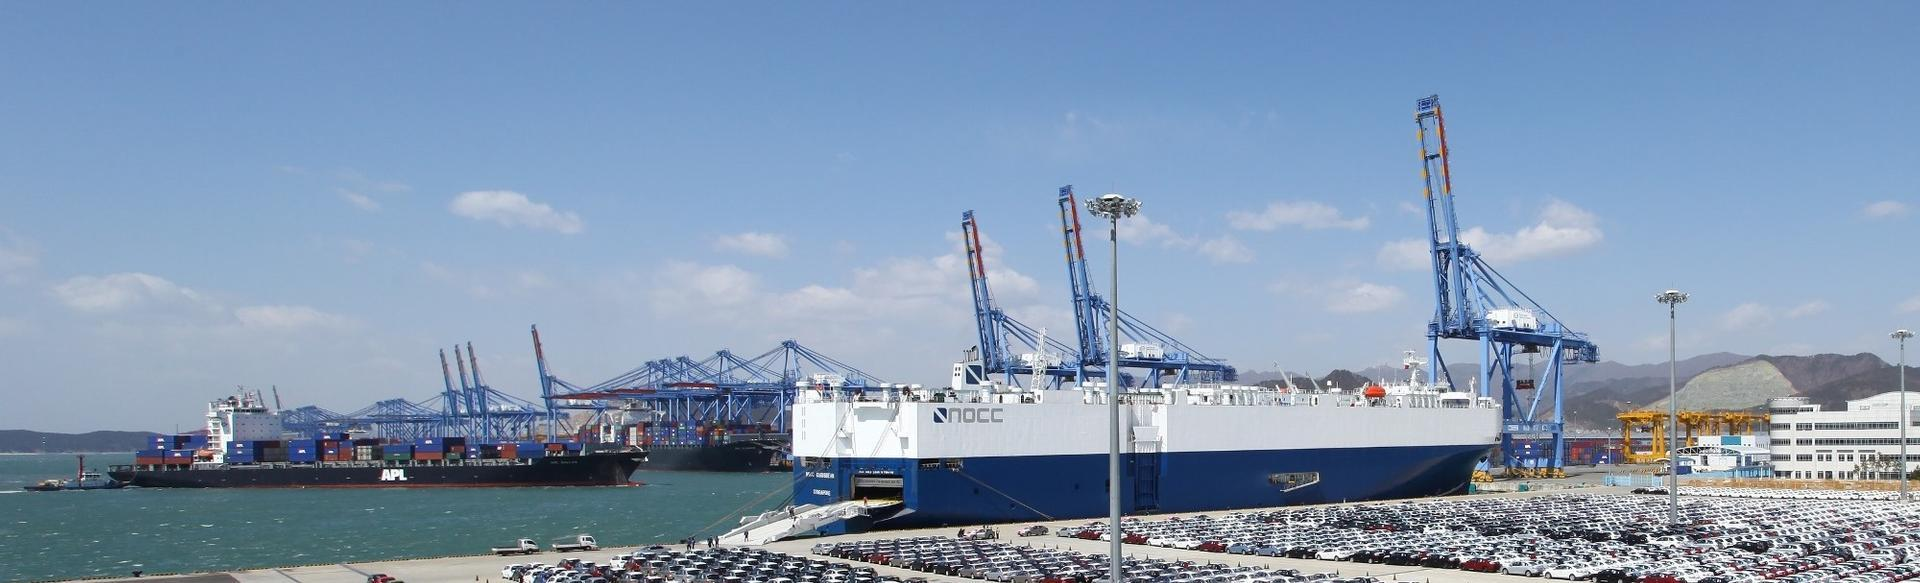 Long history in car carriers